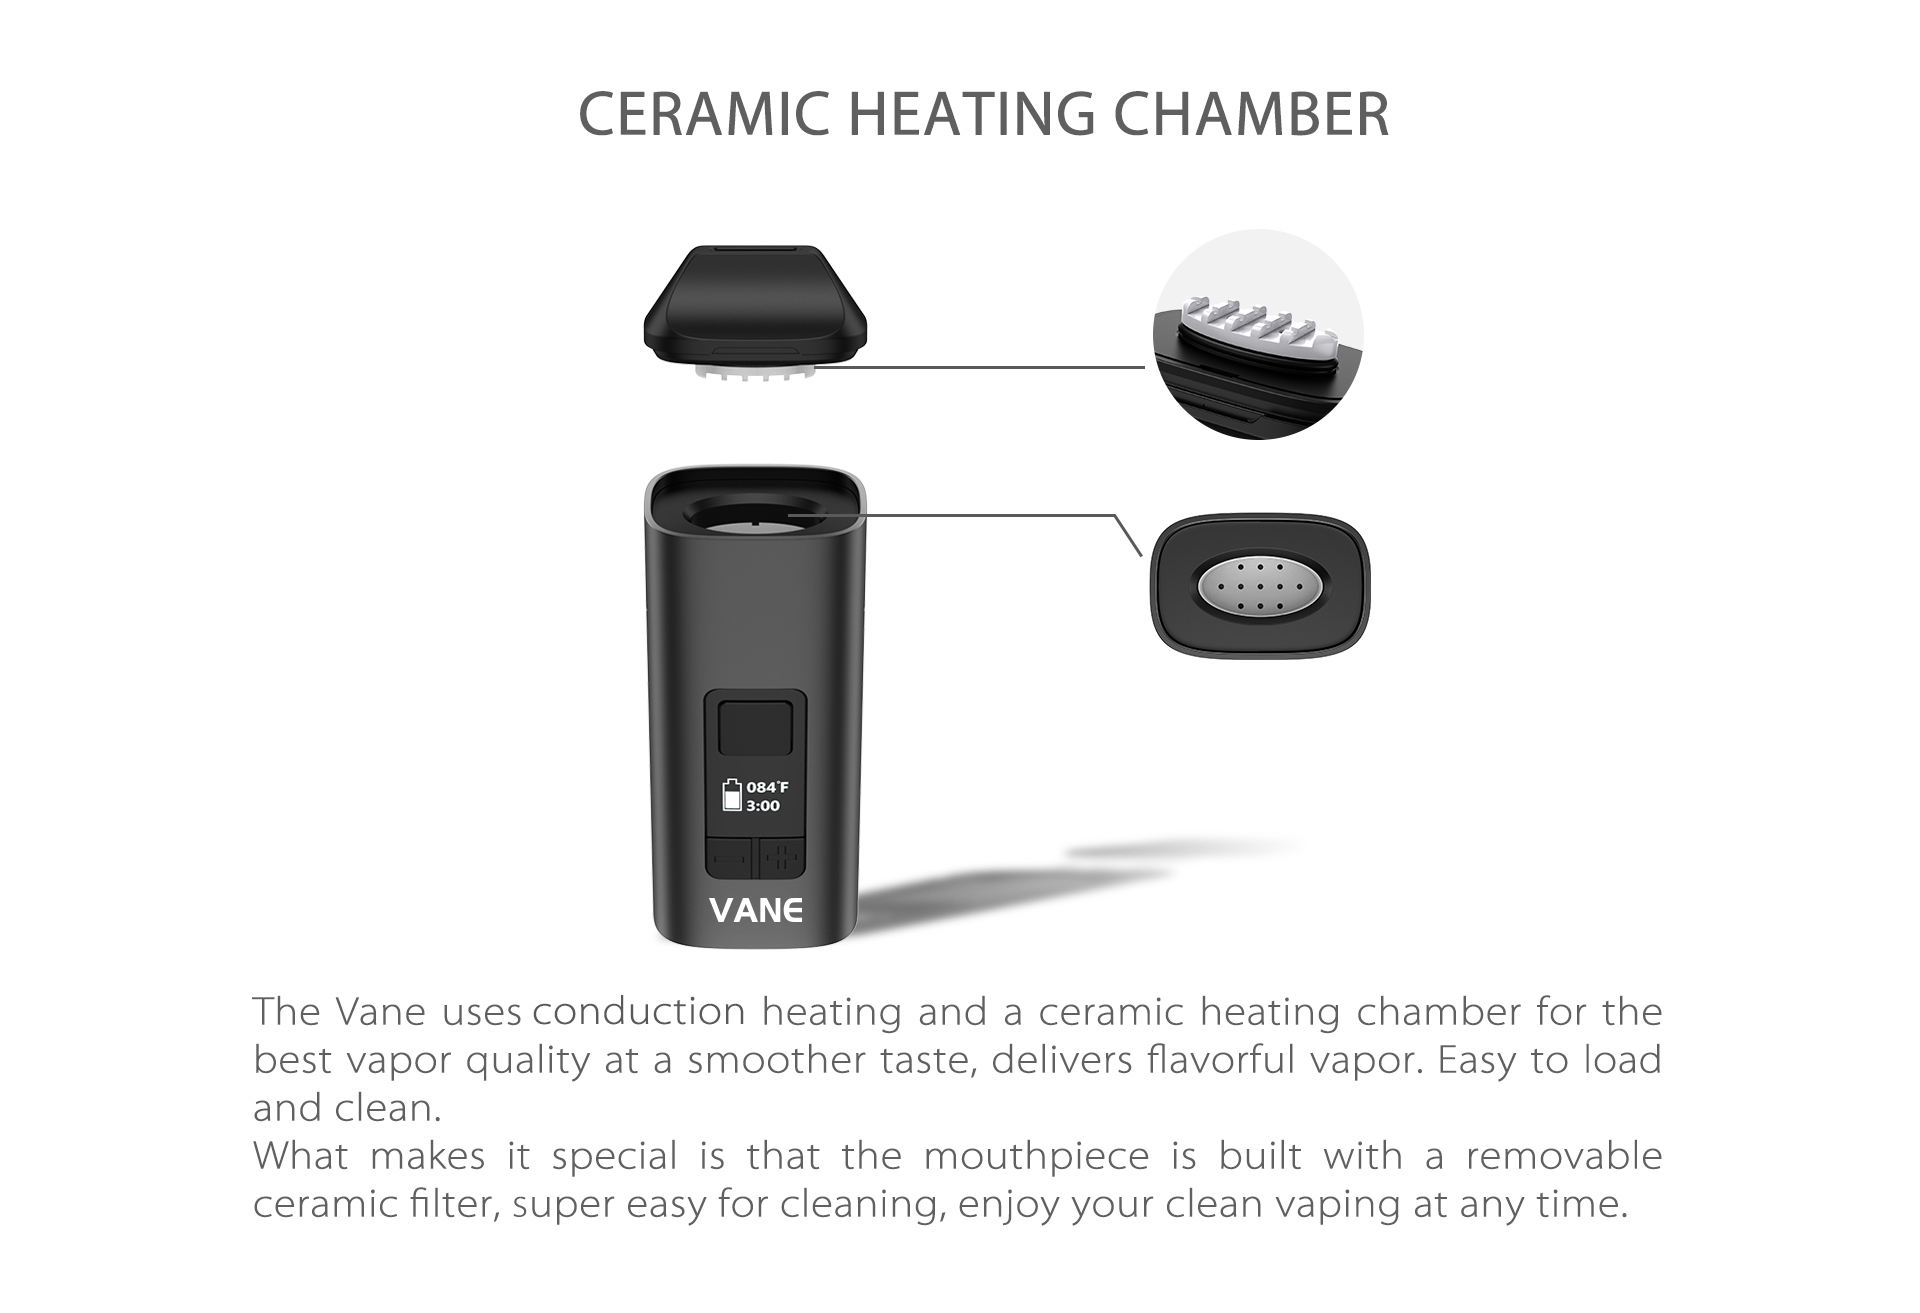 Yocan Vane Dry Vaporizer uses conduction heating and a ceramic heating chamber